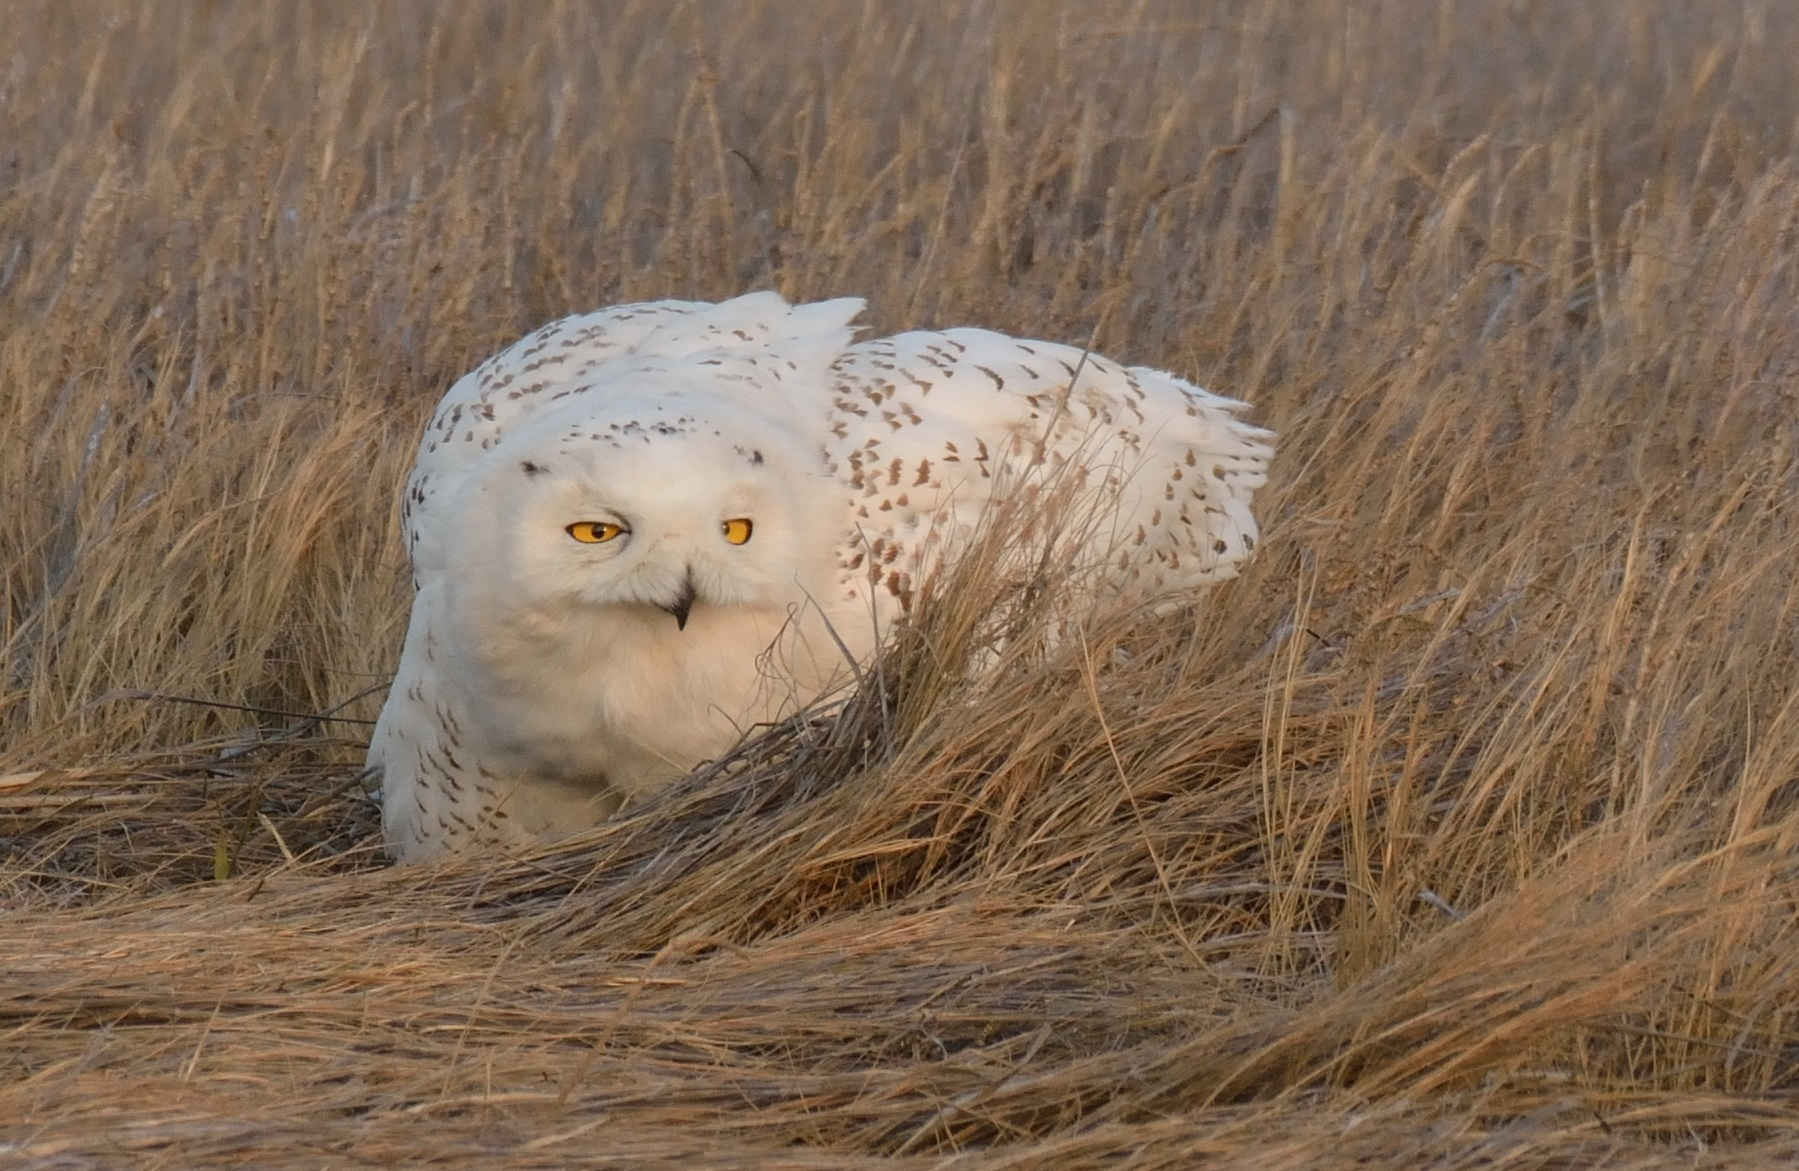 A snowy owl that was spotted in a local PA field last year.